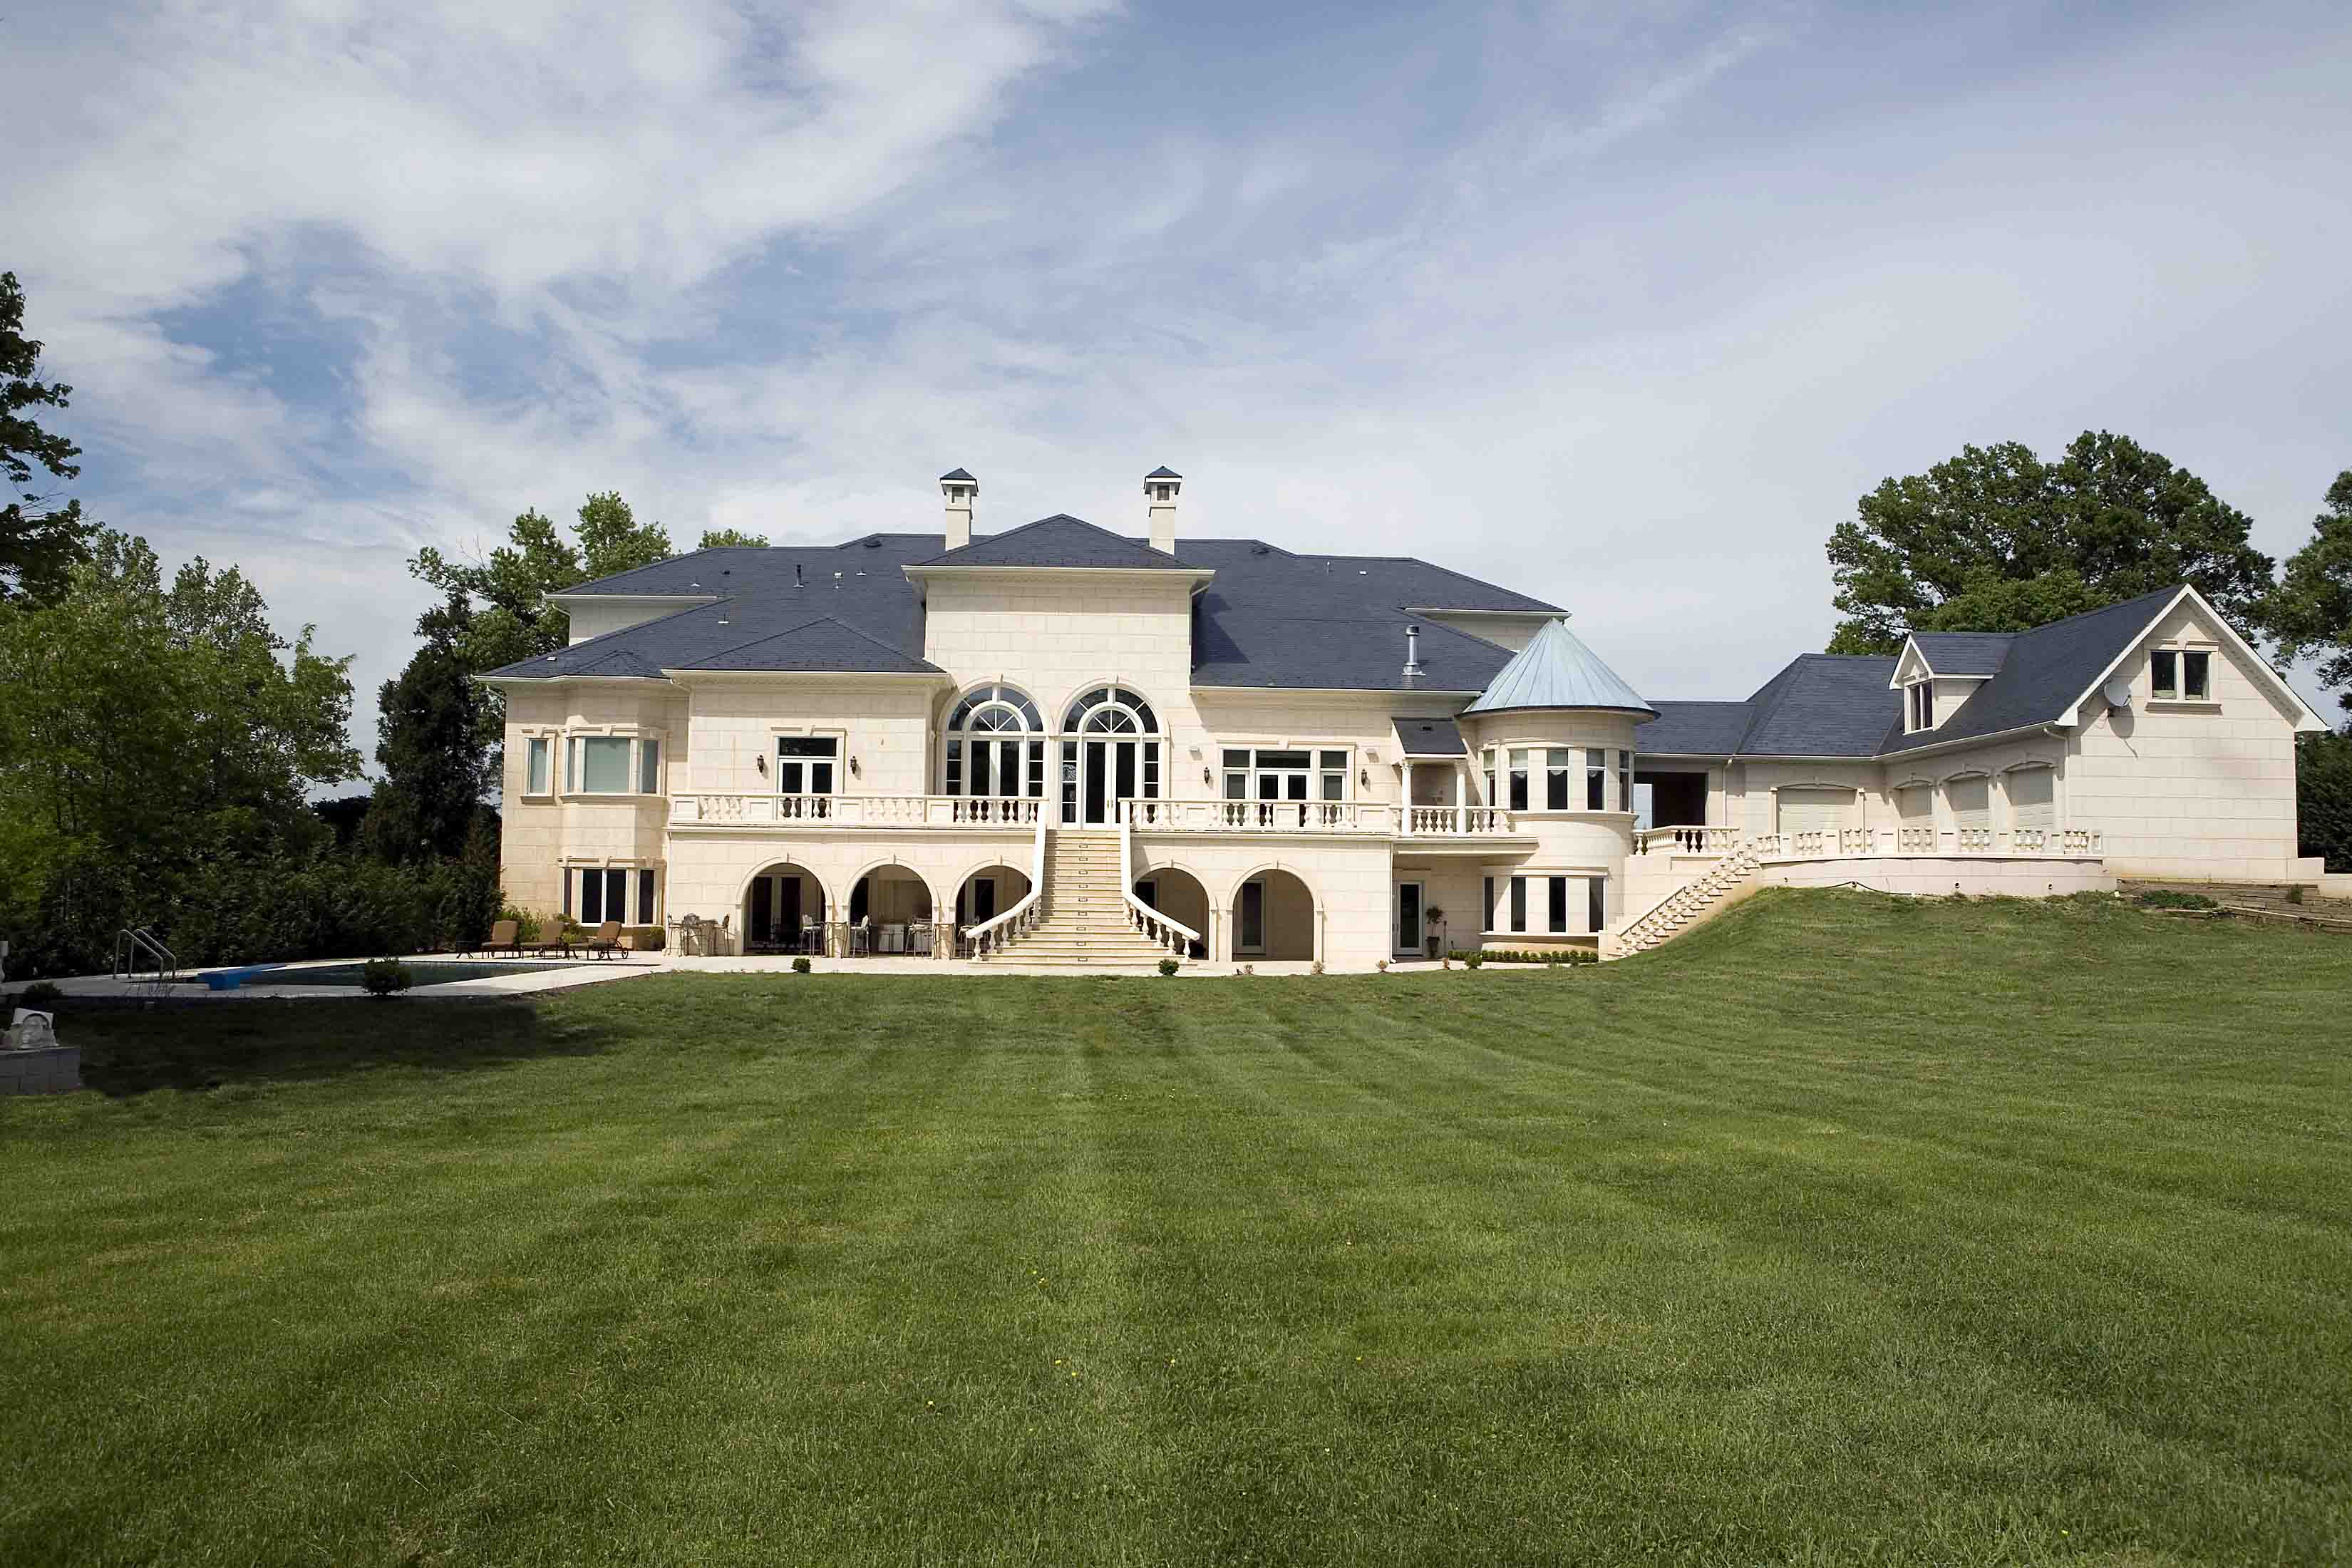 Backyard of mansion with pool with staircase of mansion in Potomac, Maryland